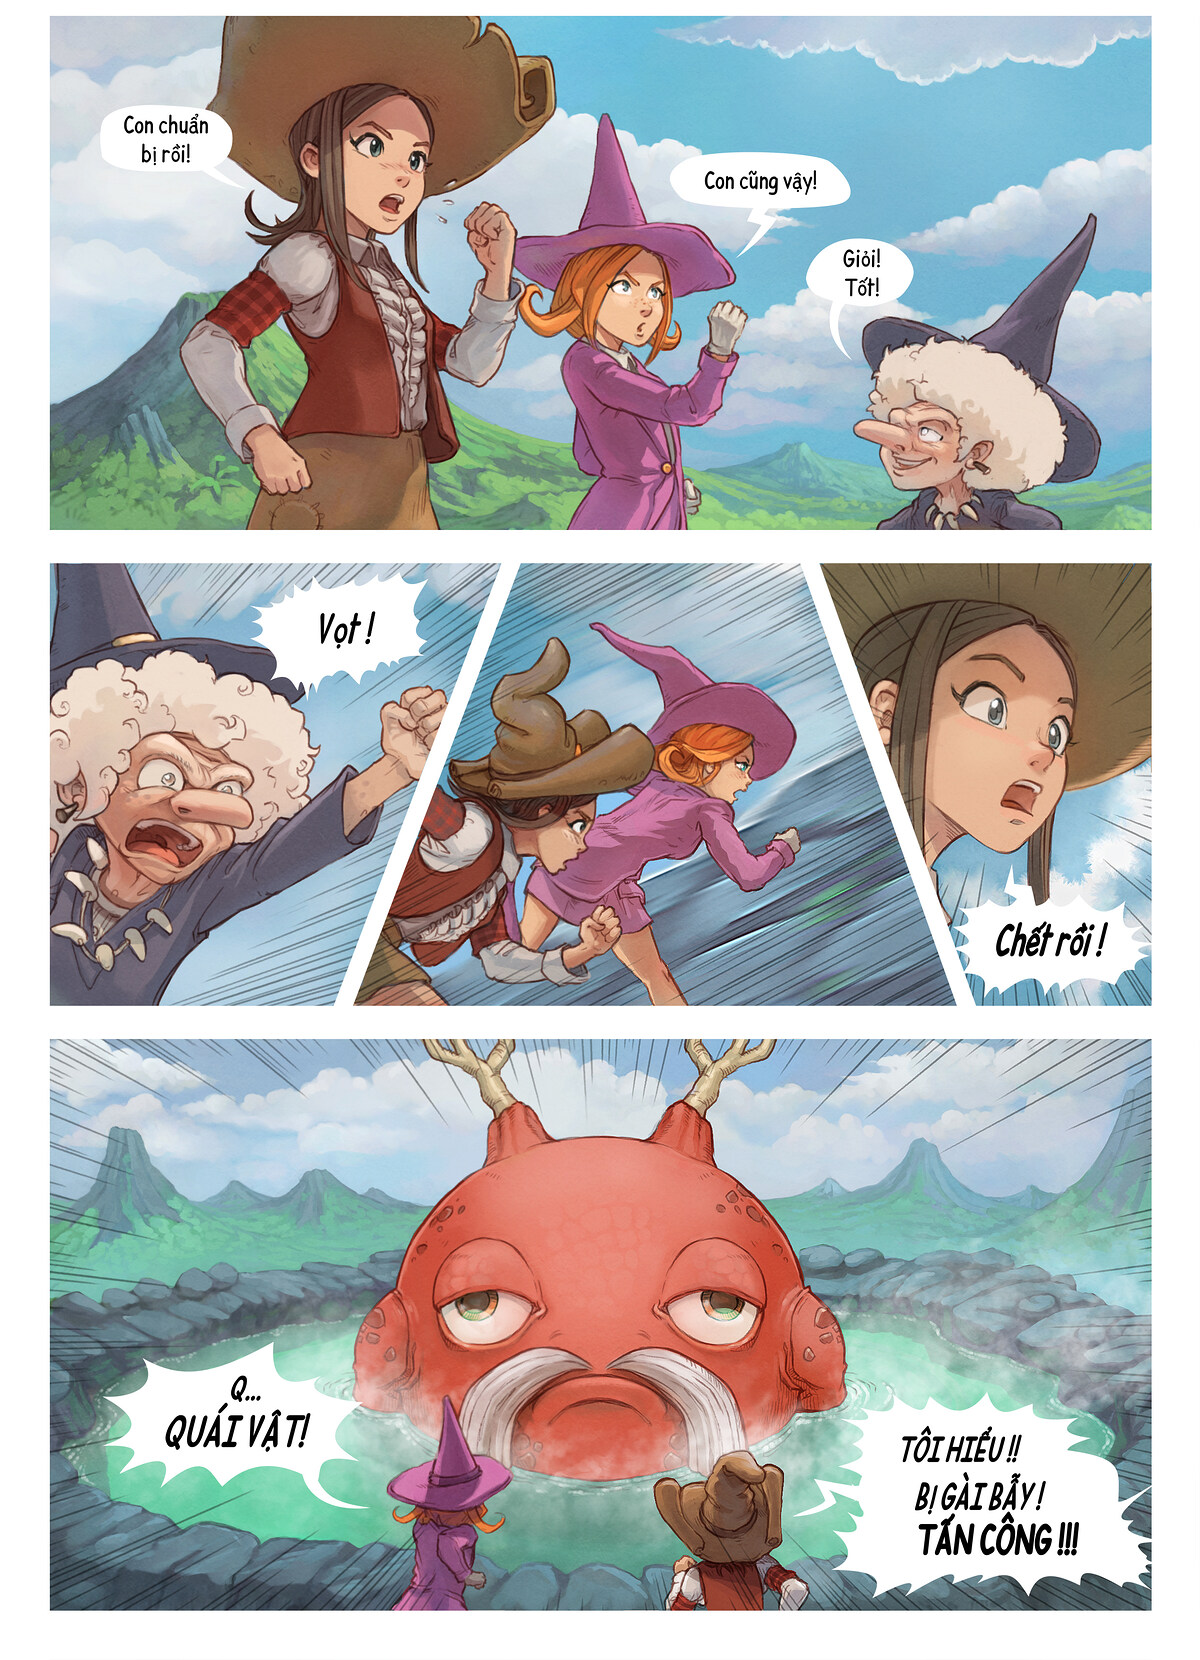 A webcomic page of Pepper&Carrot, Tập 16 [vi], trang 5